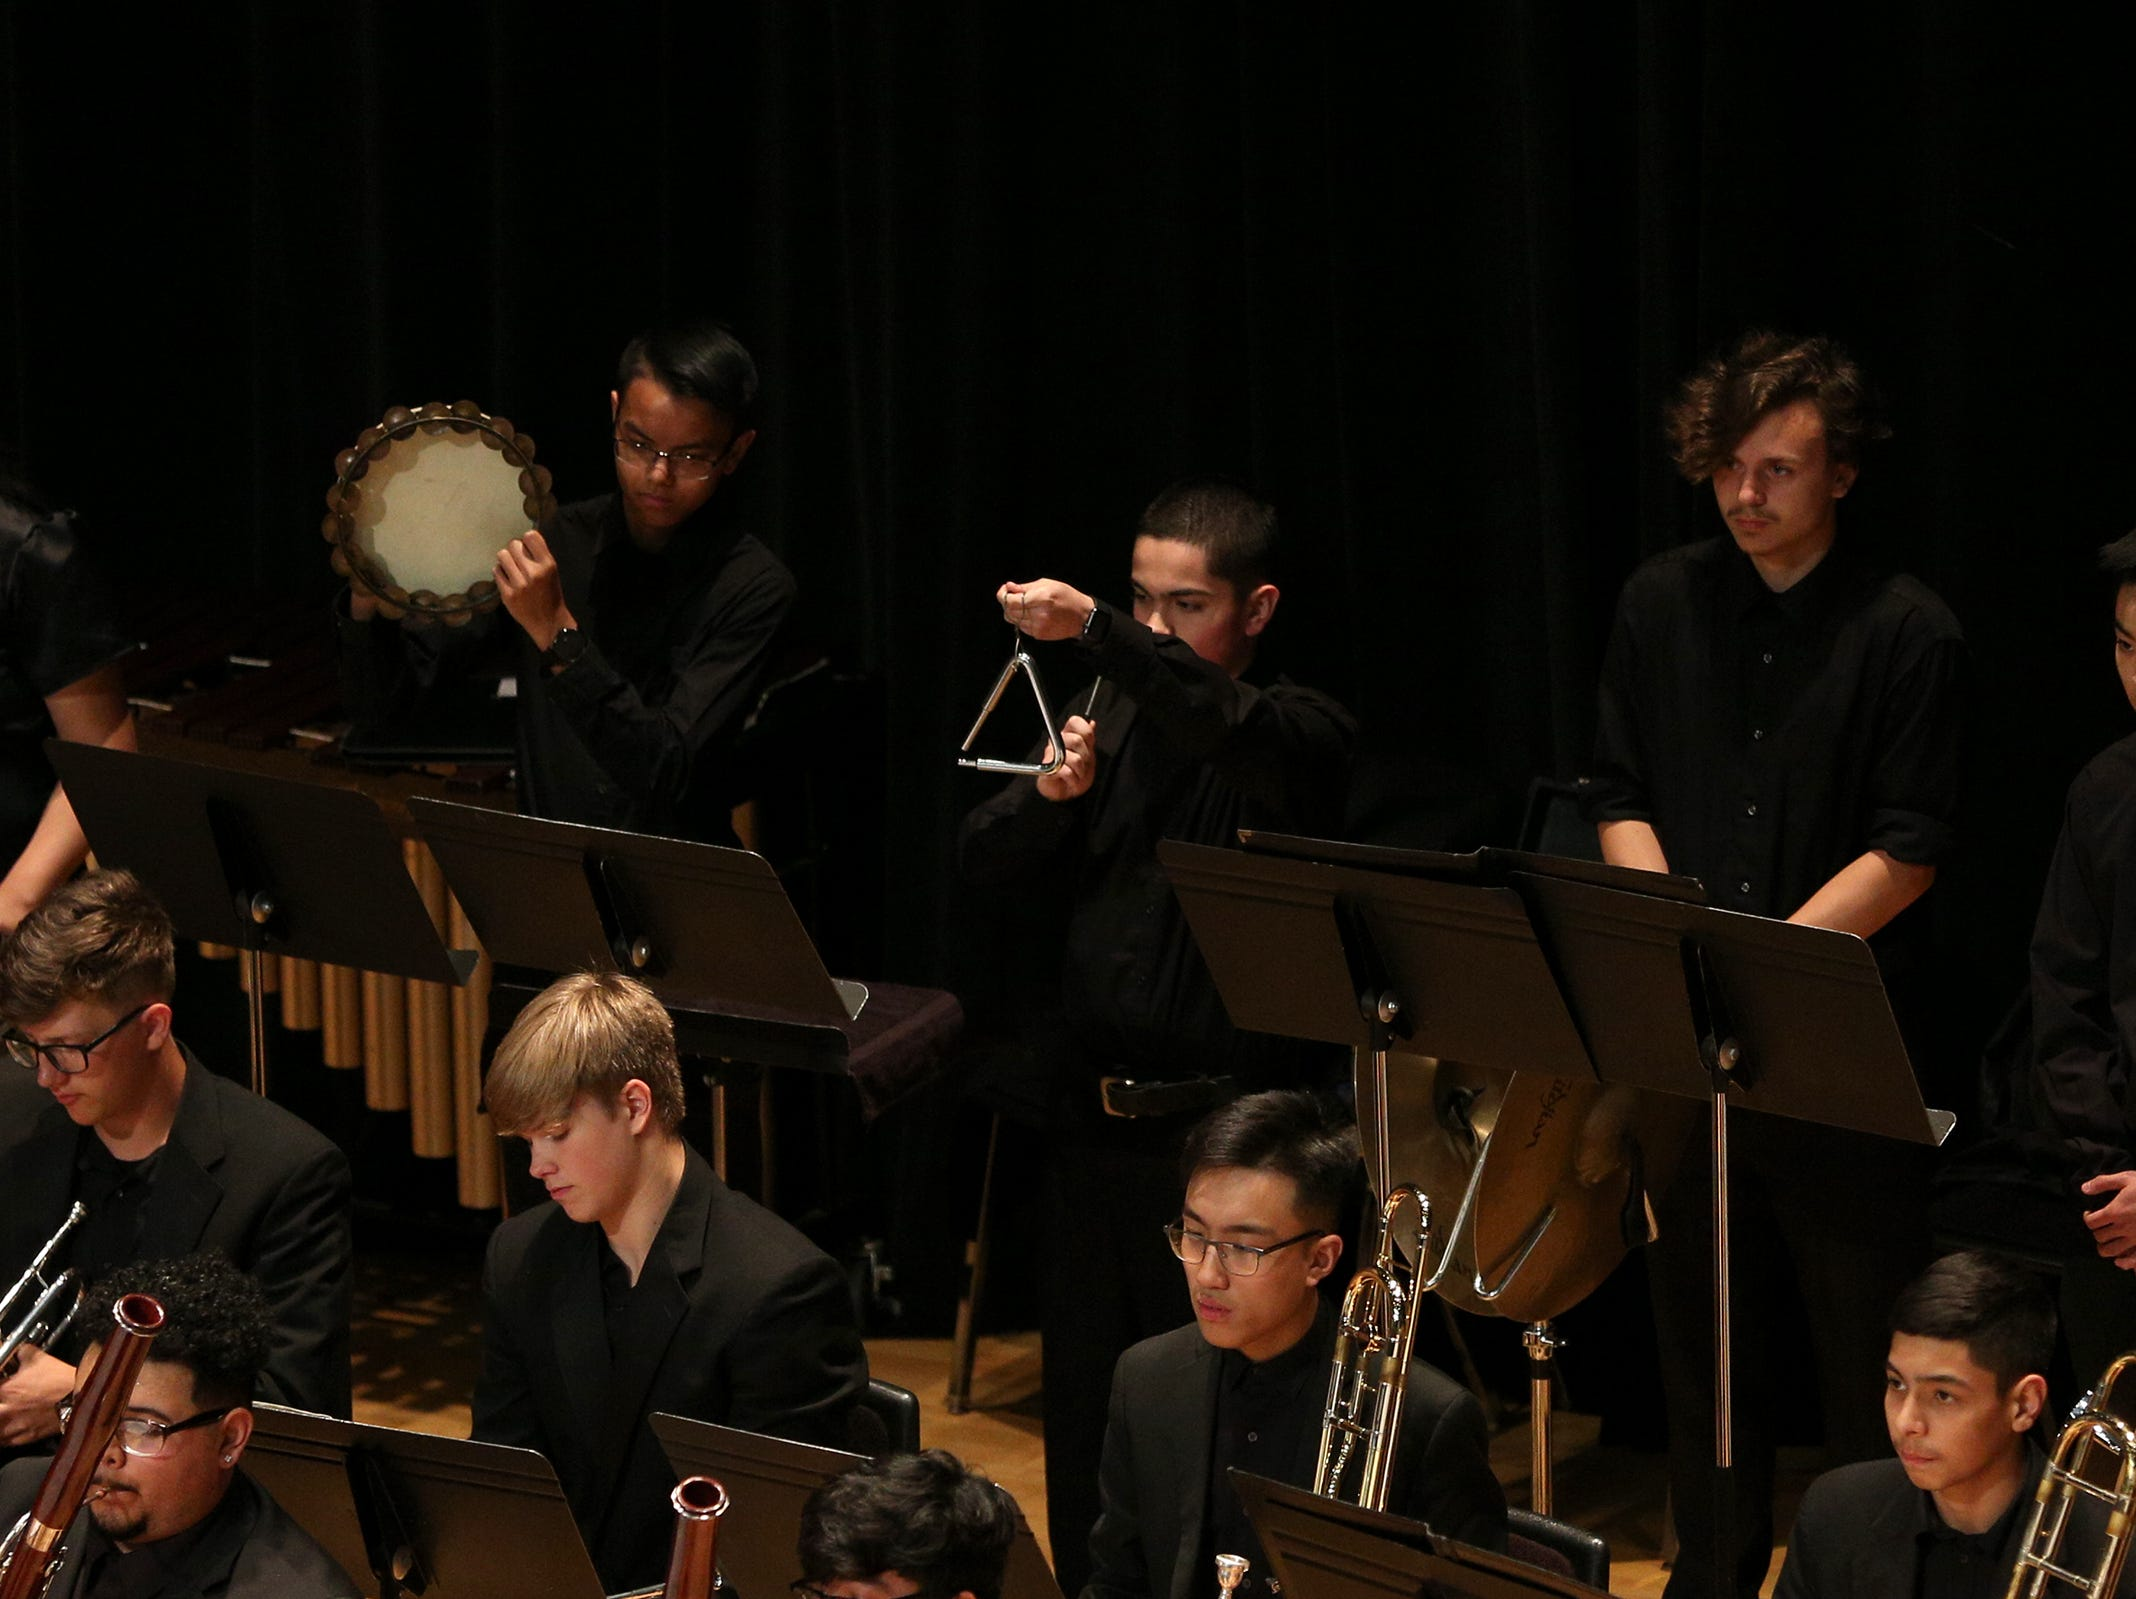 McKay High School's Orchestra, under the direction of JJ Meyer, performs at the OSAA 6A Orchestra State Championships at Oregon State University in Corvallis on May 9, 2019.